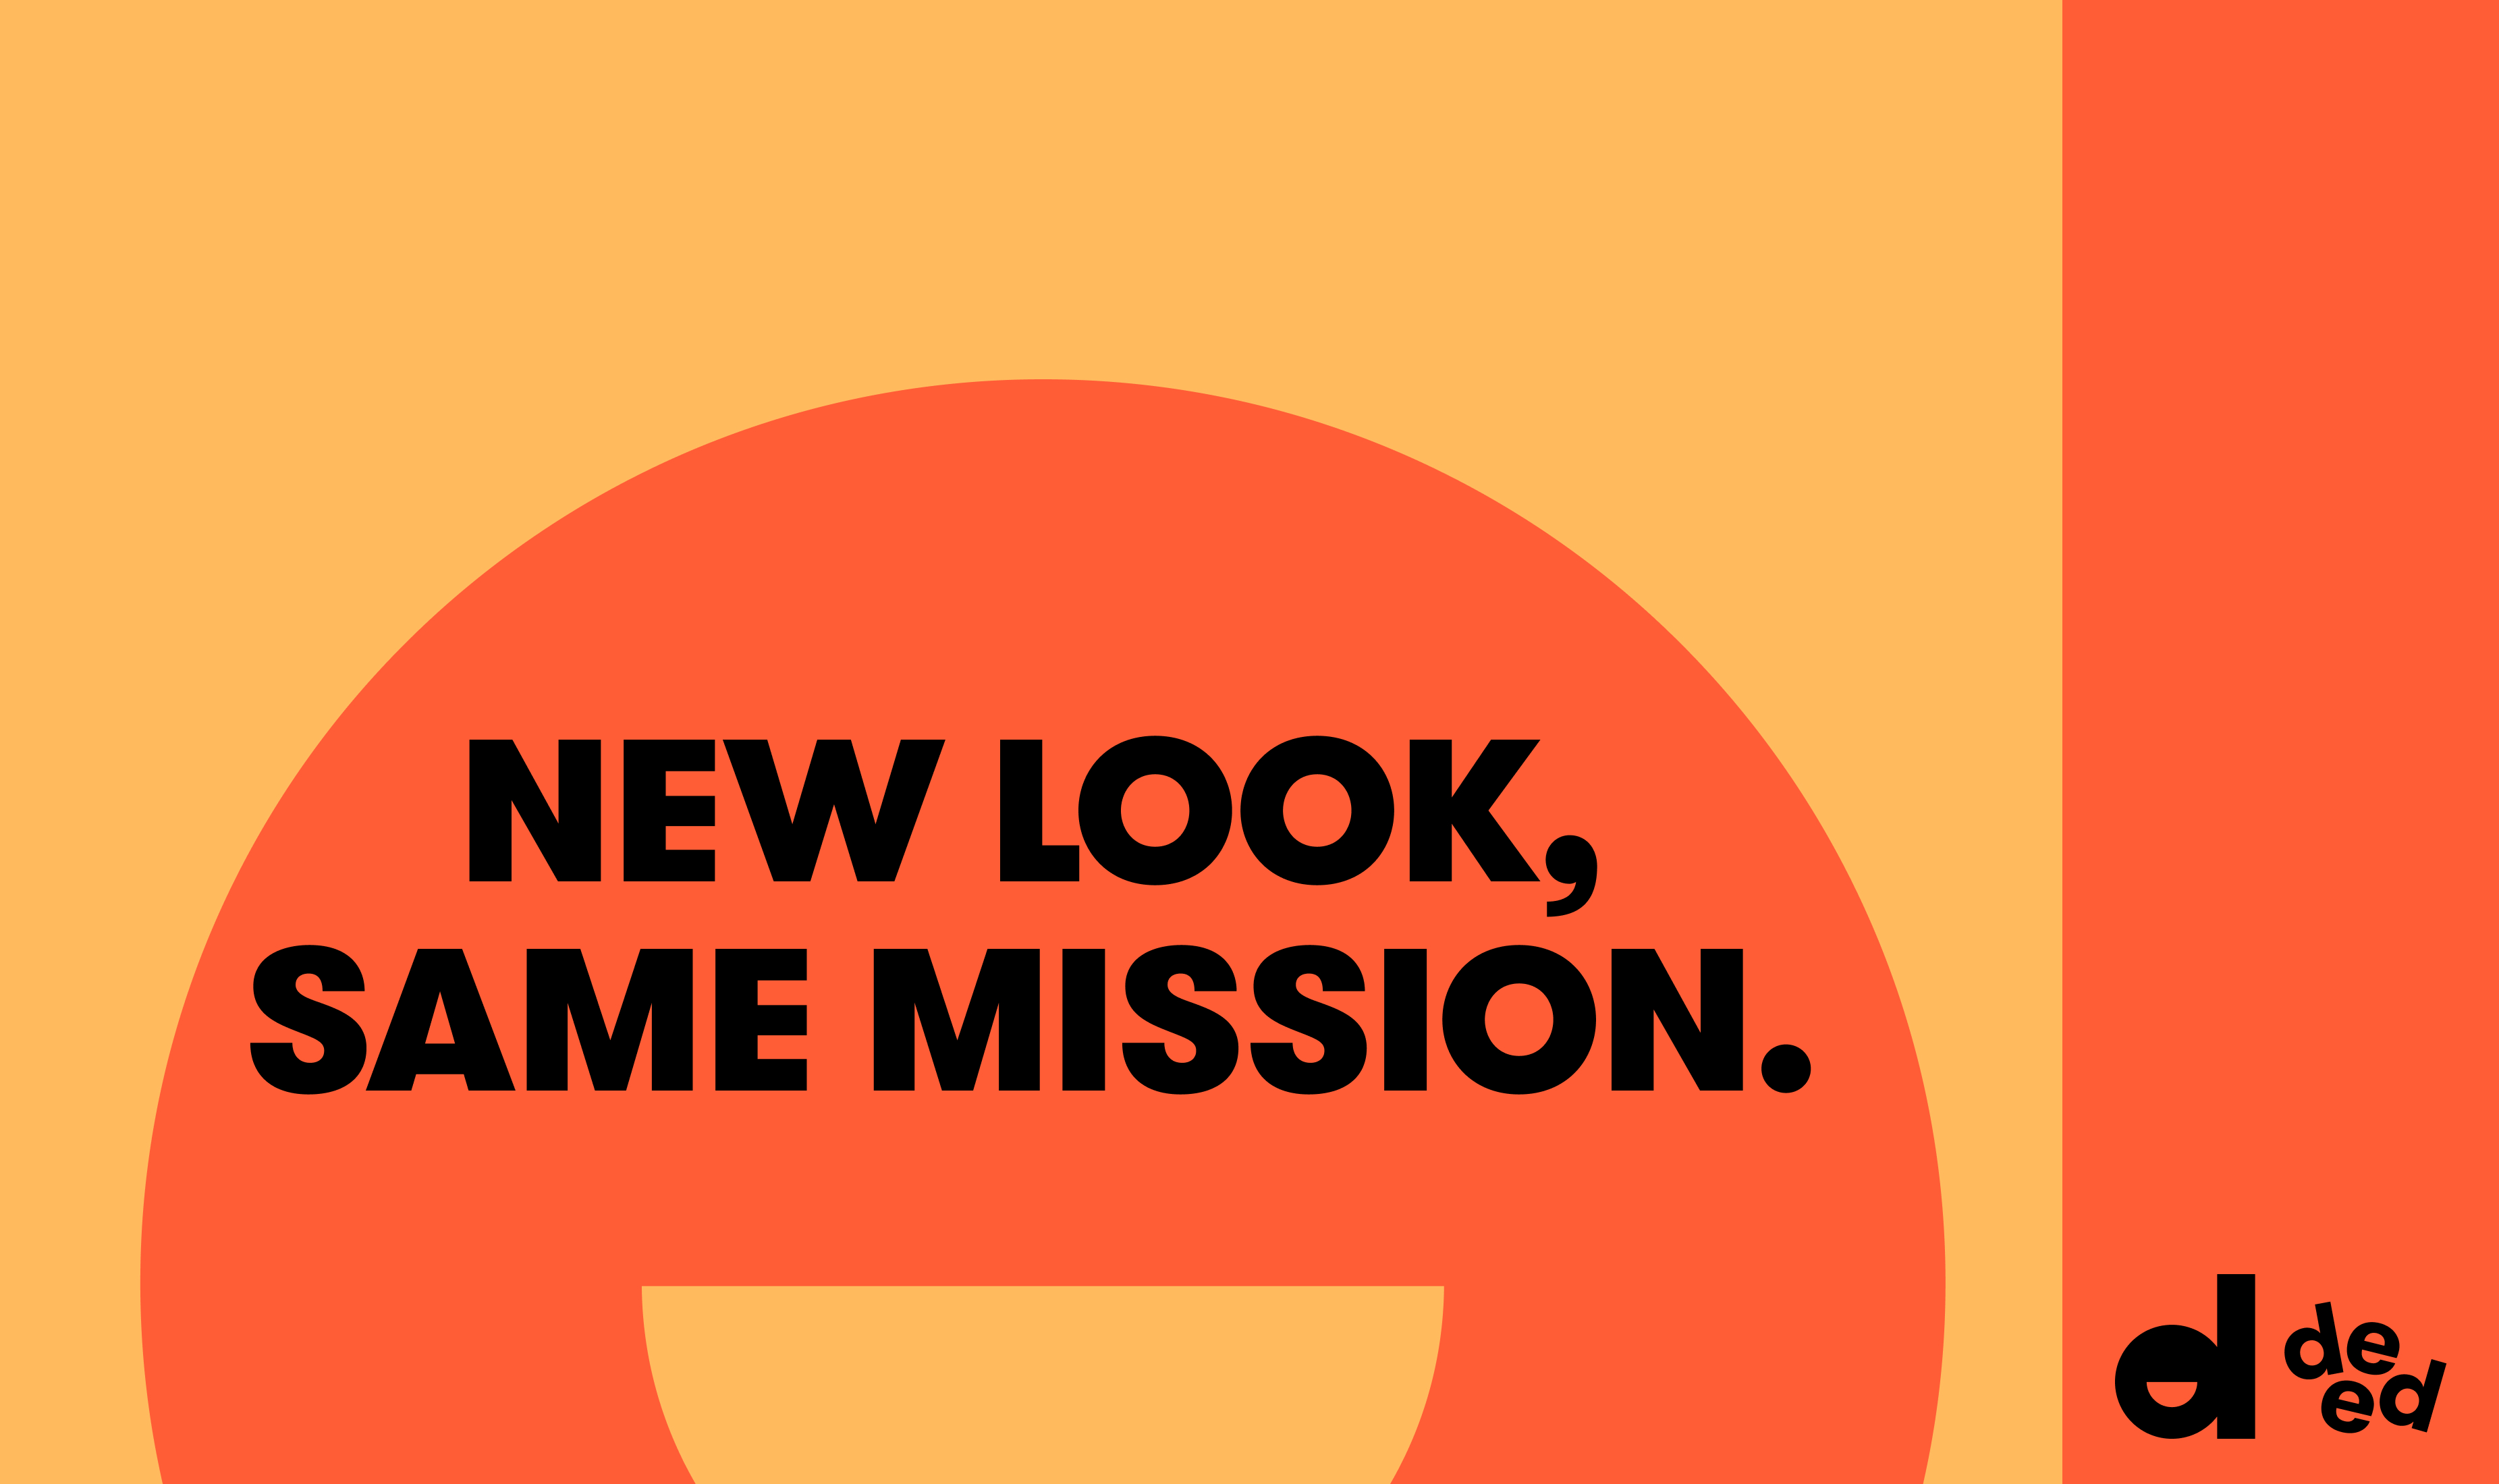 New Look. Same Mission.